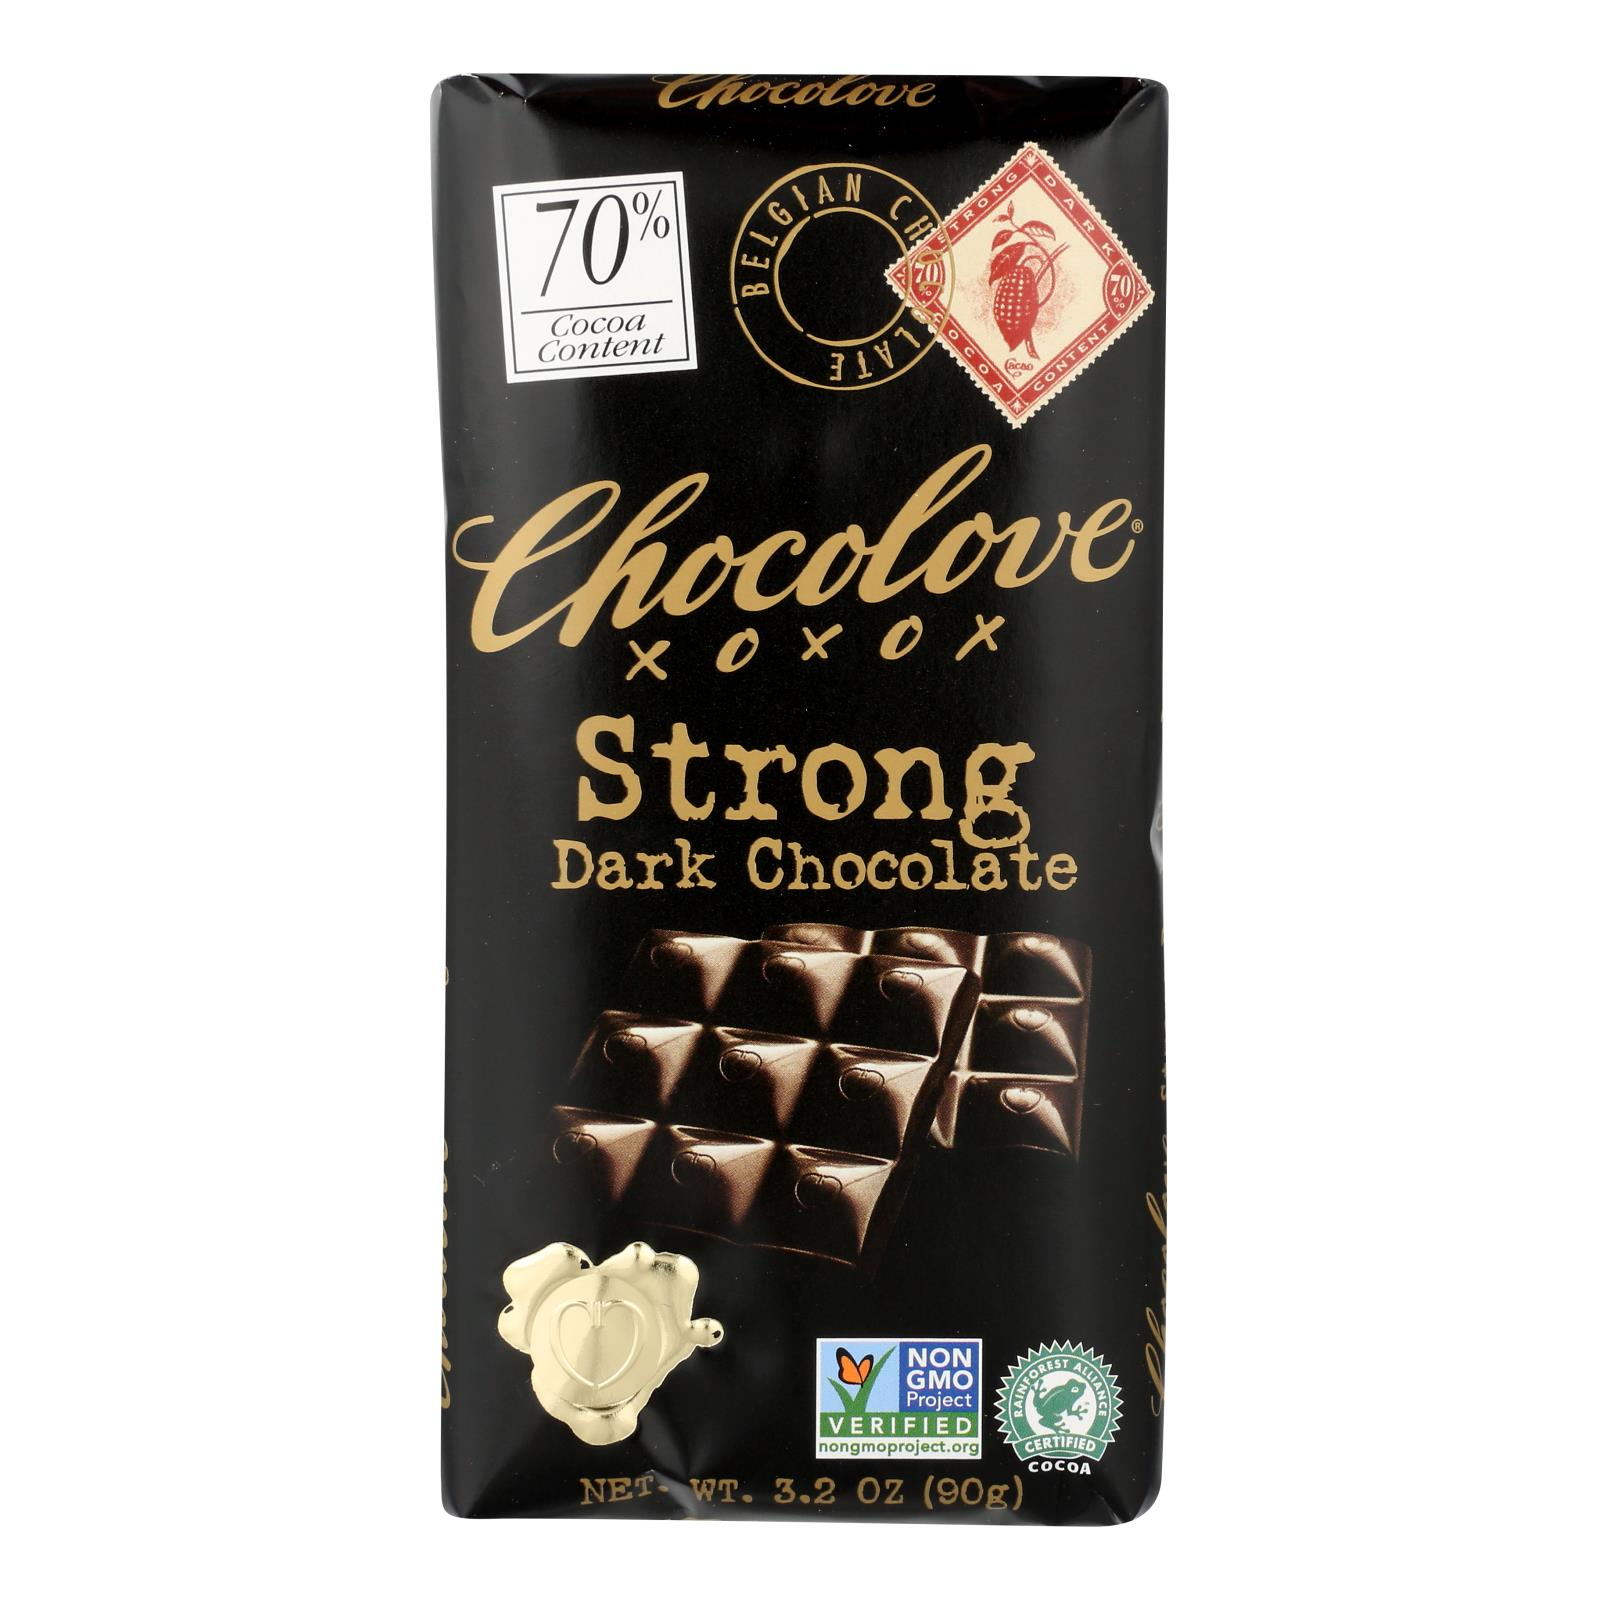 Chocolove Xoxox - Premium Chocolate Bar - Dark Chocolate - Strong - 3.2 oz Bars - Case of 12